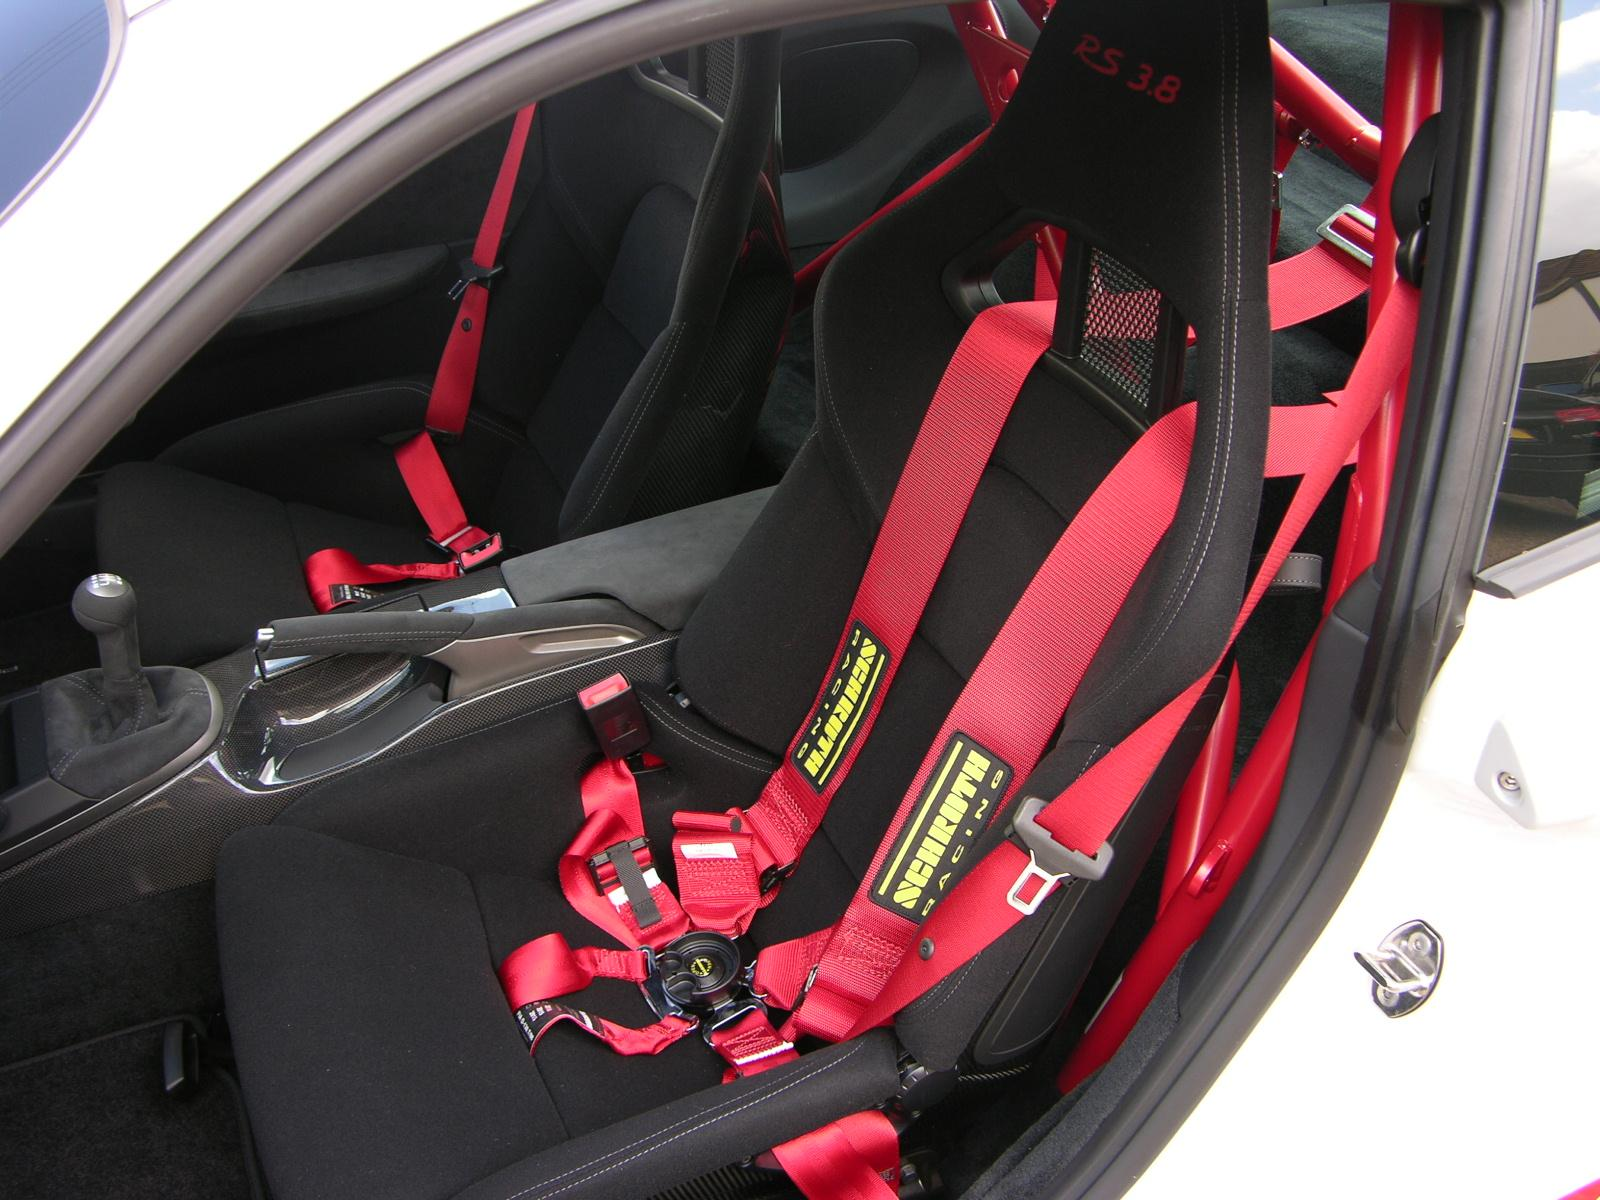 Emerythacks Adding Bluetooth Remote Control To Computer Speakers Racing Car Safety Harness Wire Center File Bucket Seat With Schroth Six Point In A 2010 Porsche Rh Commons Wikimedia Org